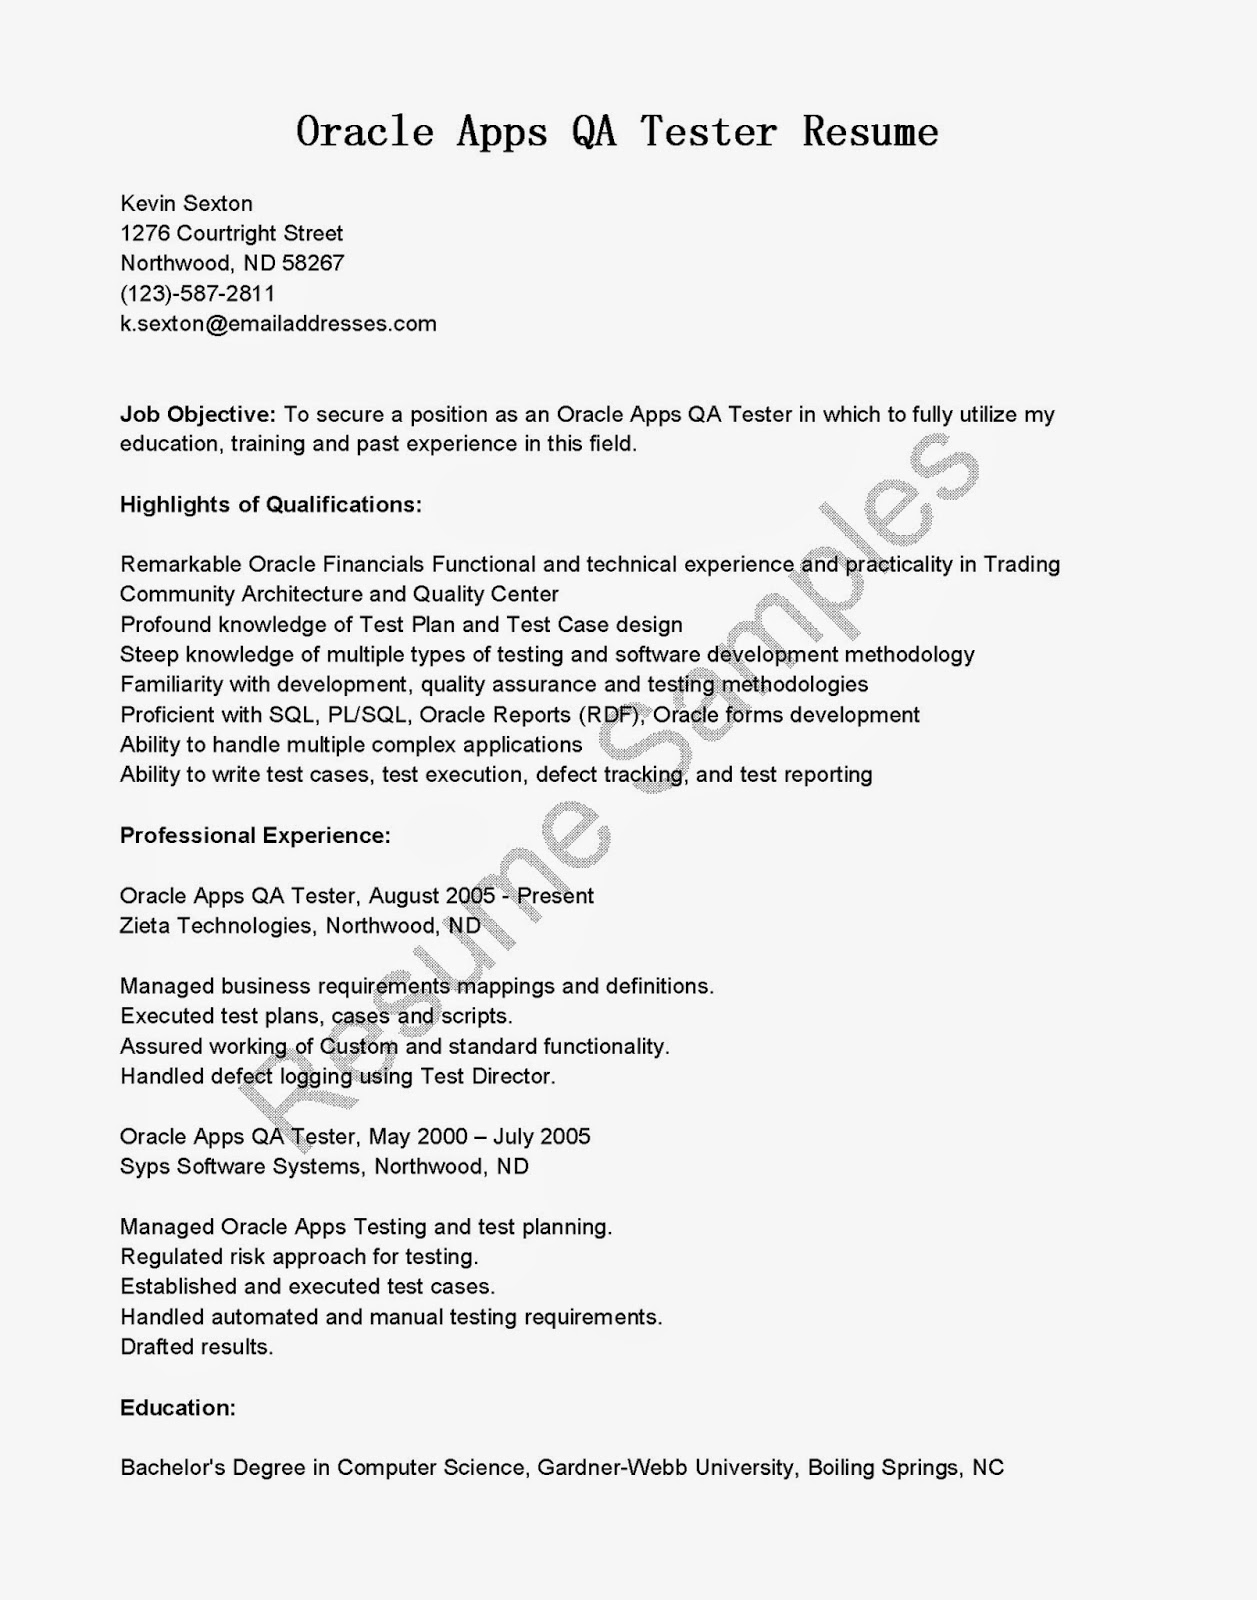 Buying a home Turn in a cover letter resume in india Homework help